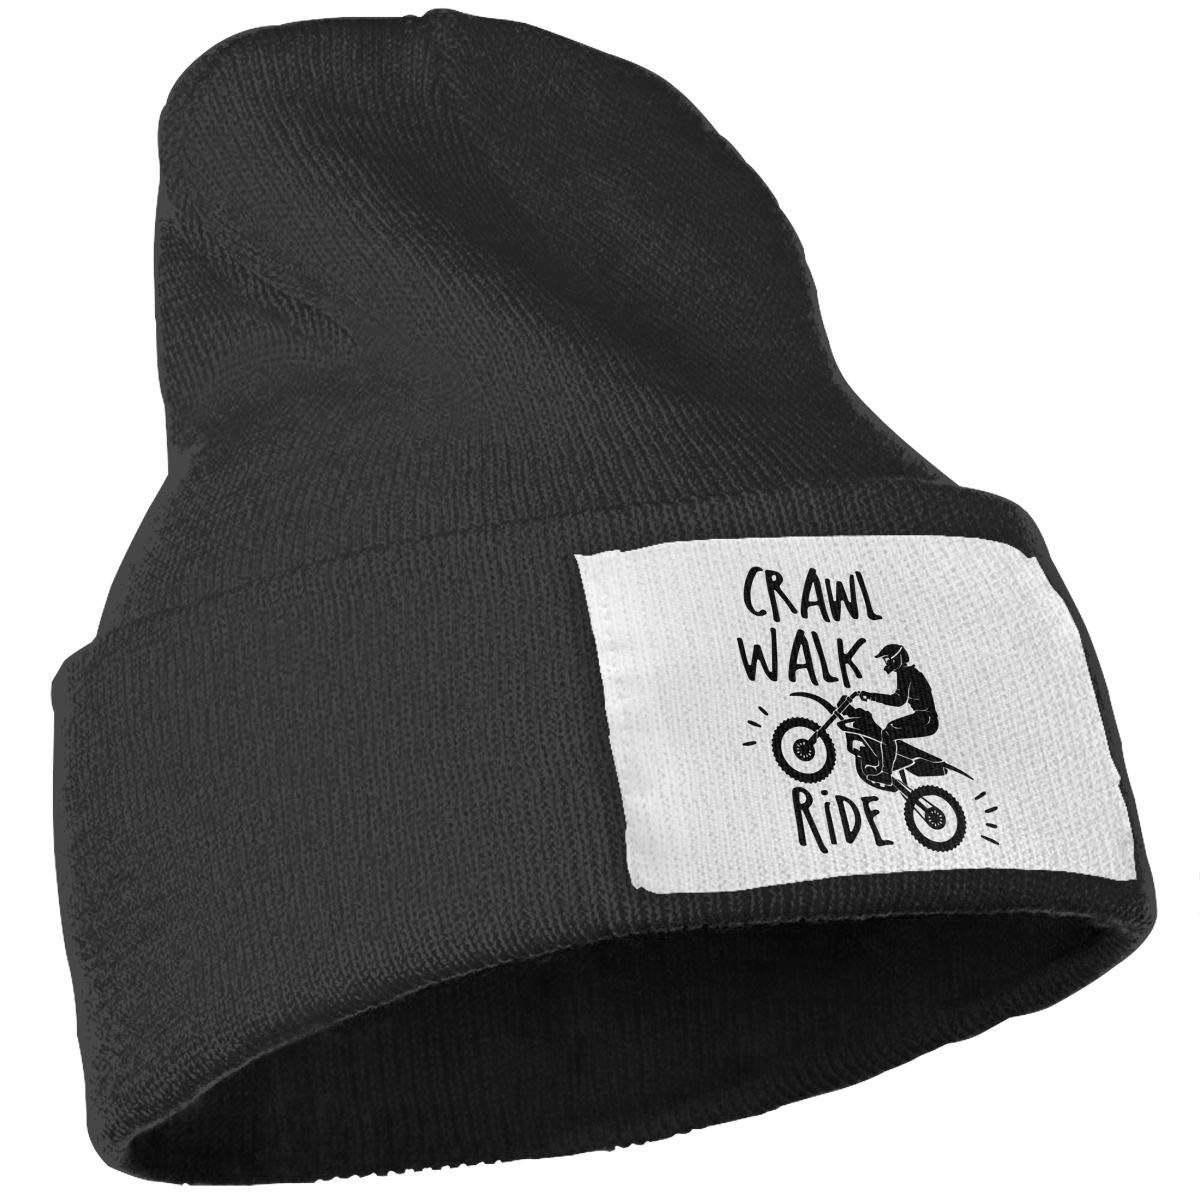 Unisex Crawl Walk Ride Outdoor Warm Knit Beanies Hat Soft Winter Knit Caps